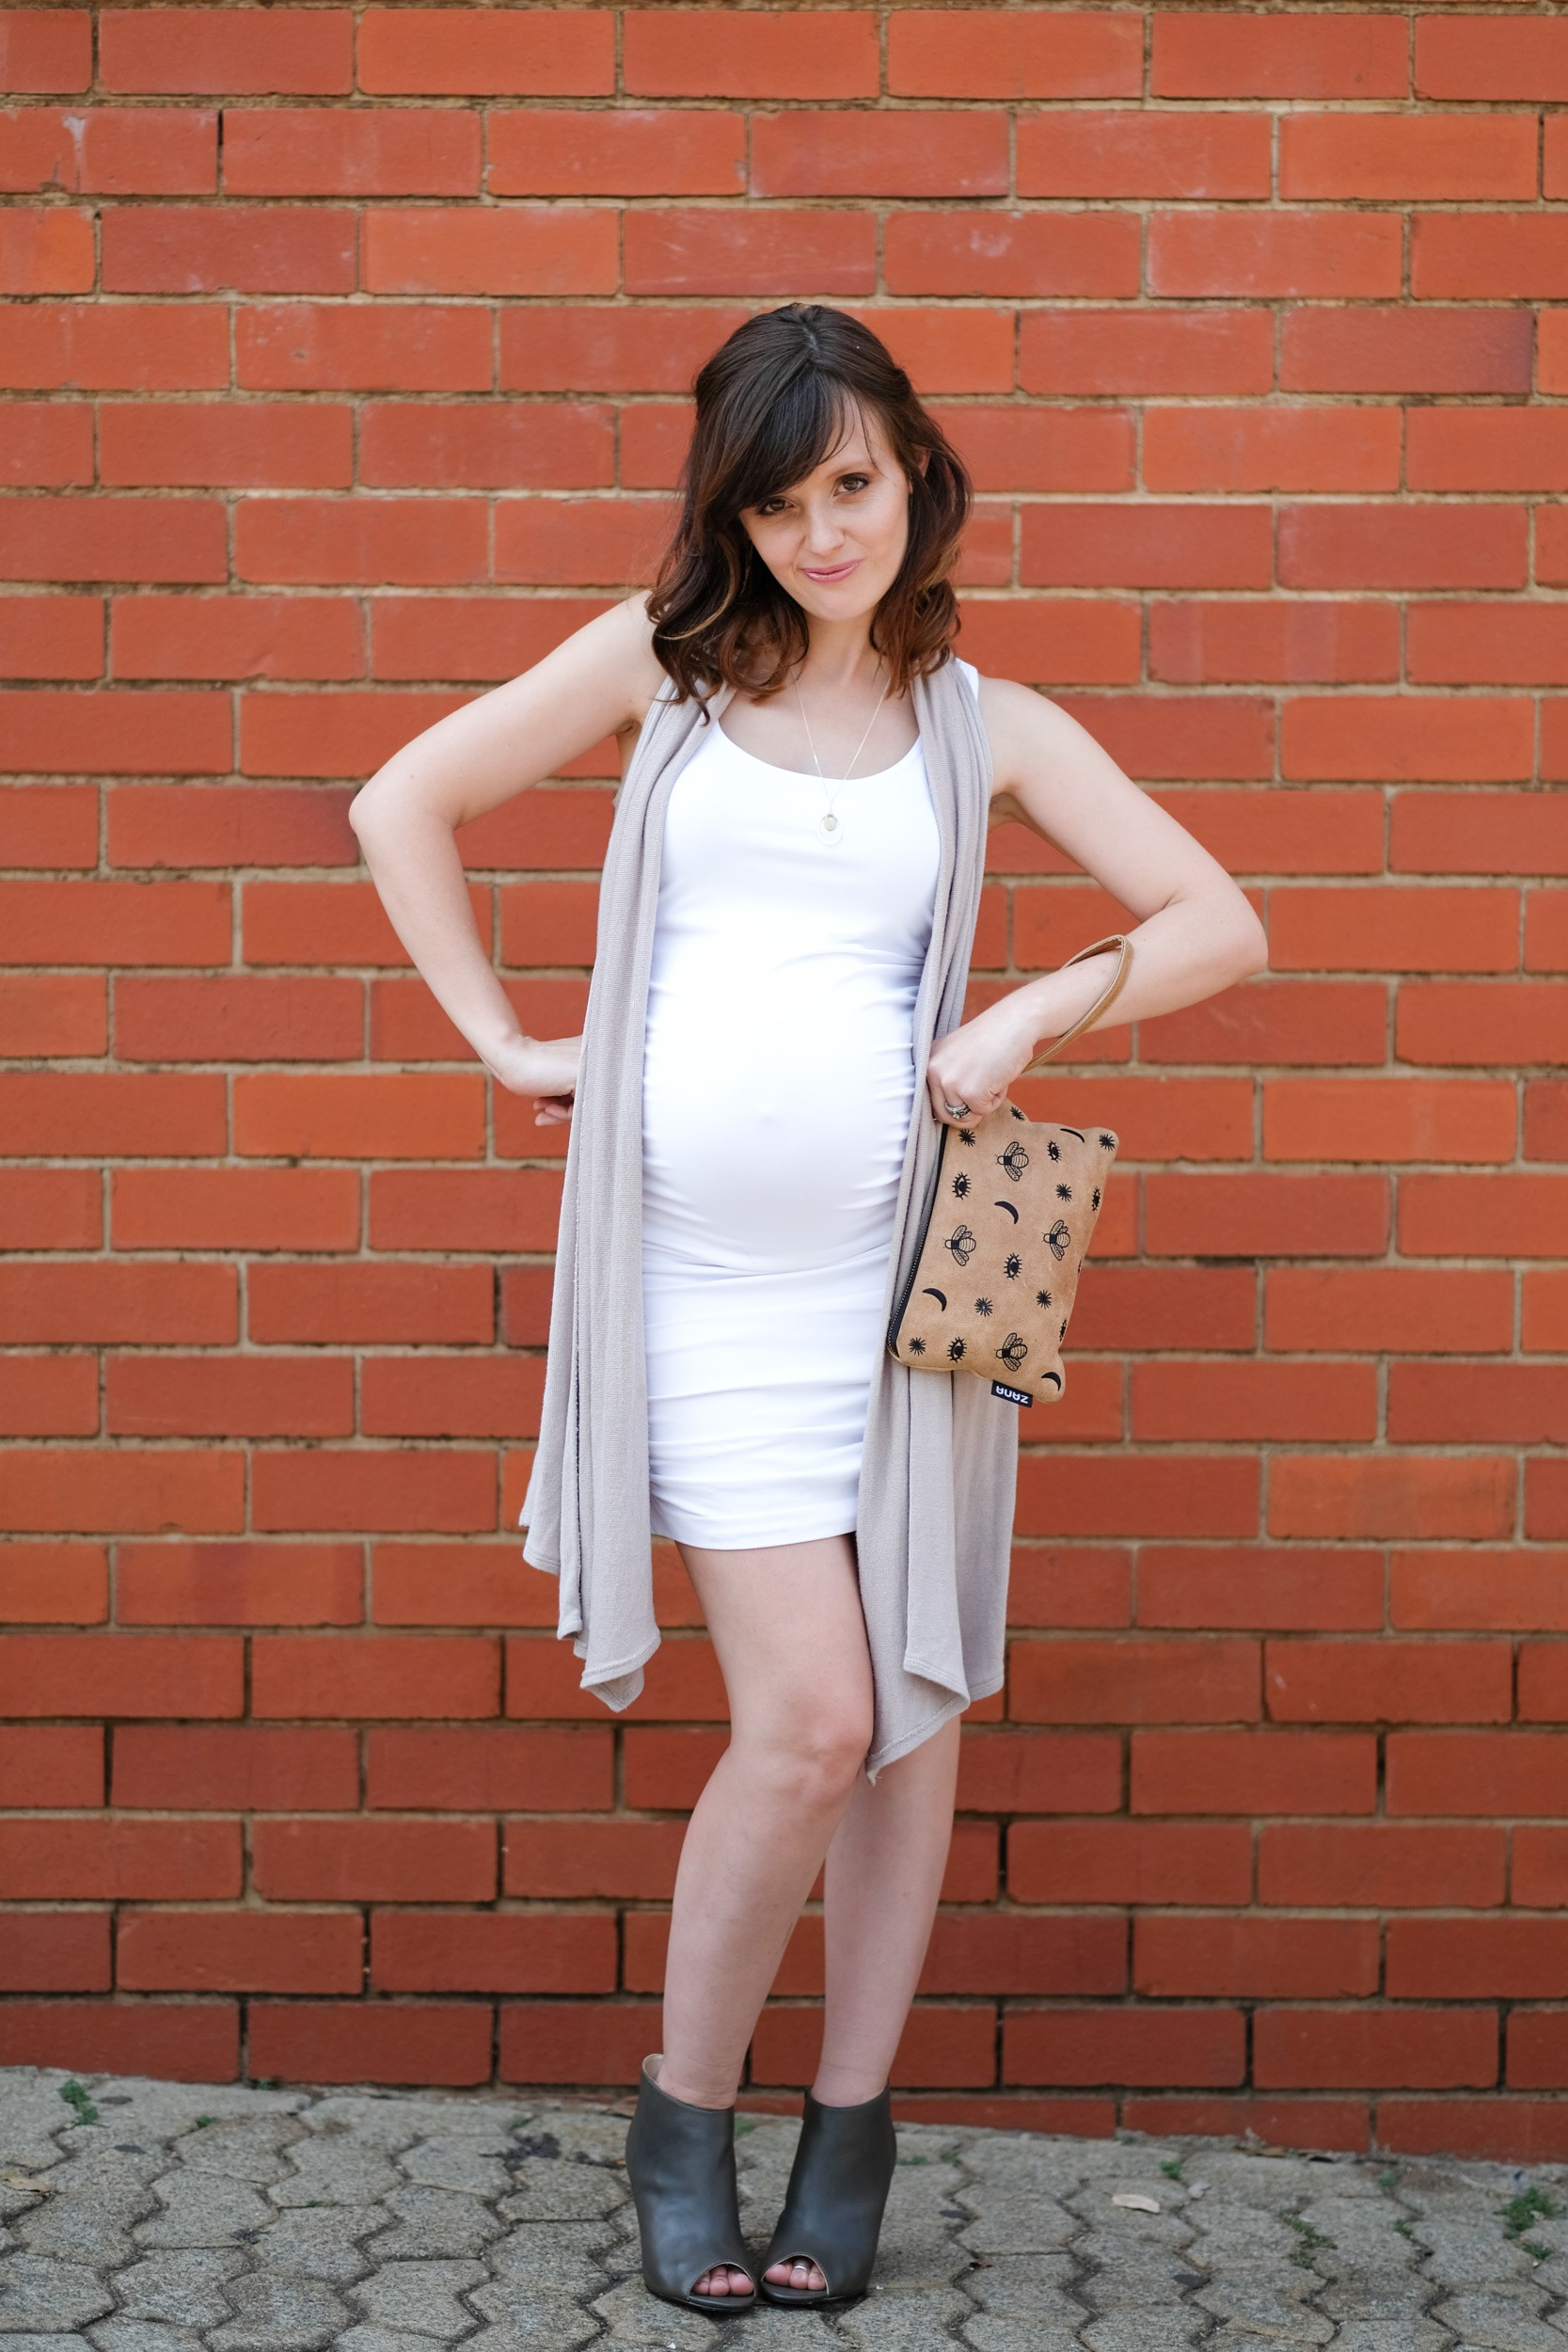 Ruche Top / Dress, Style the bump: Yummy Mummy Maternity Ruche Top / Dress